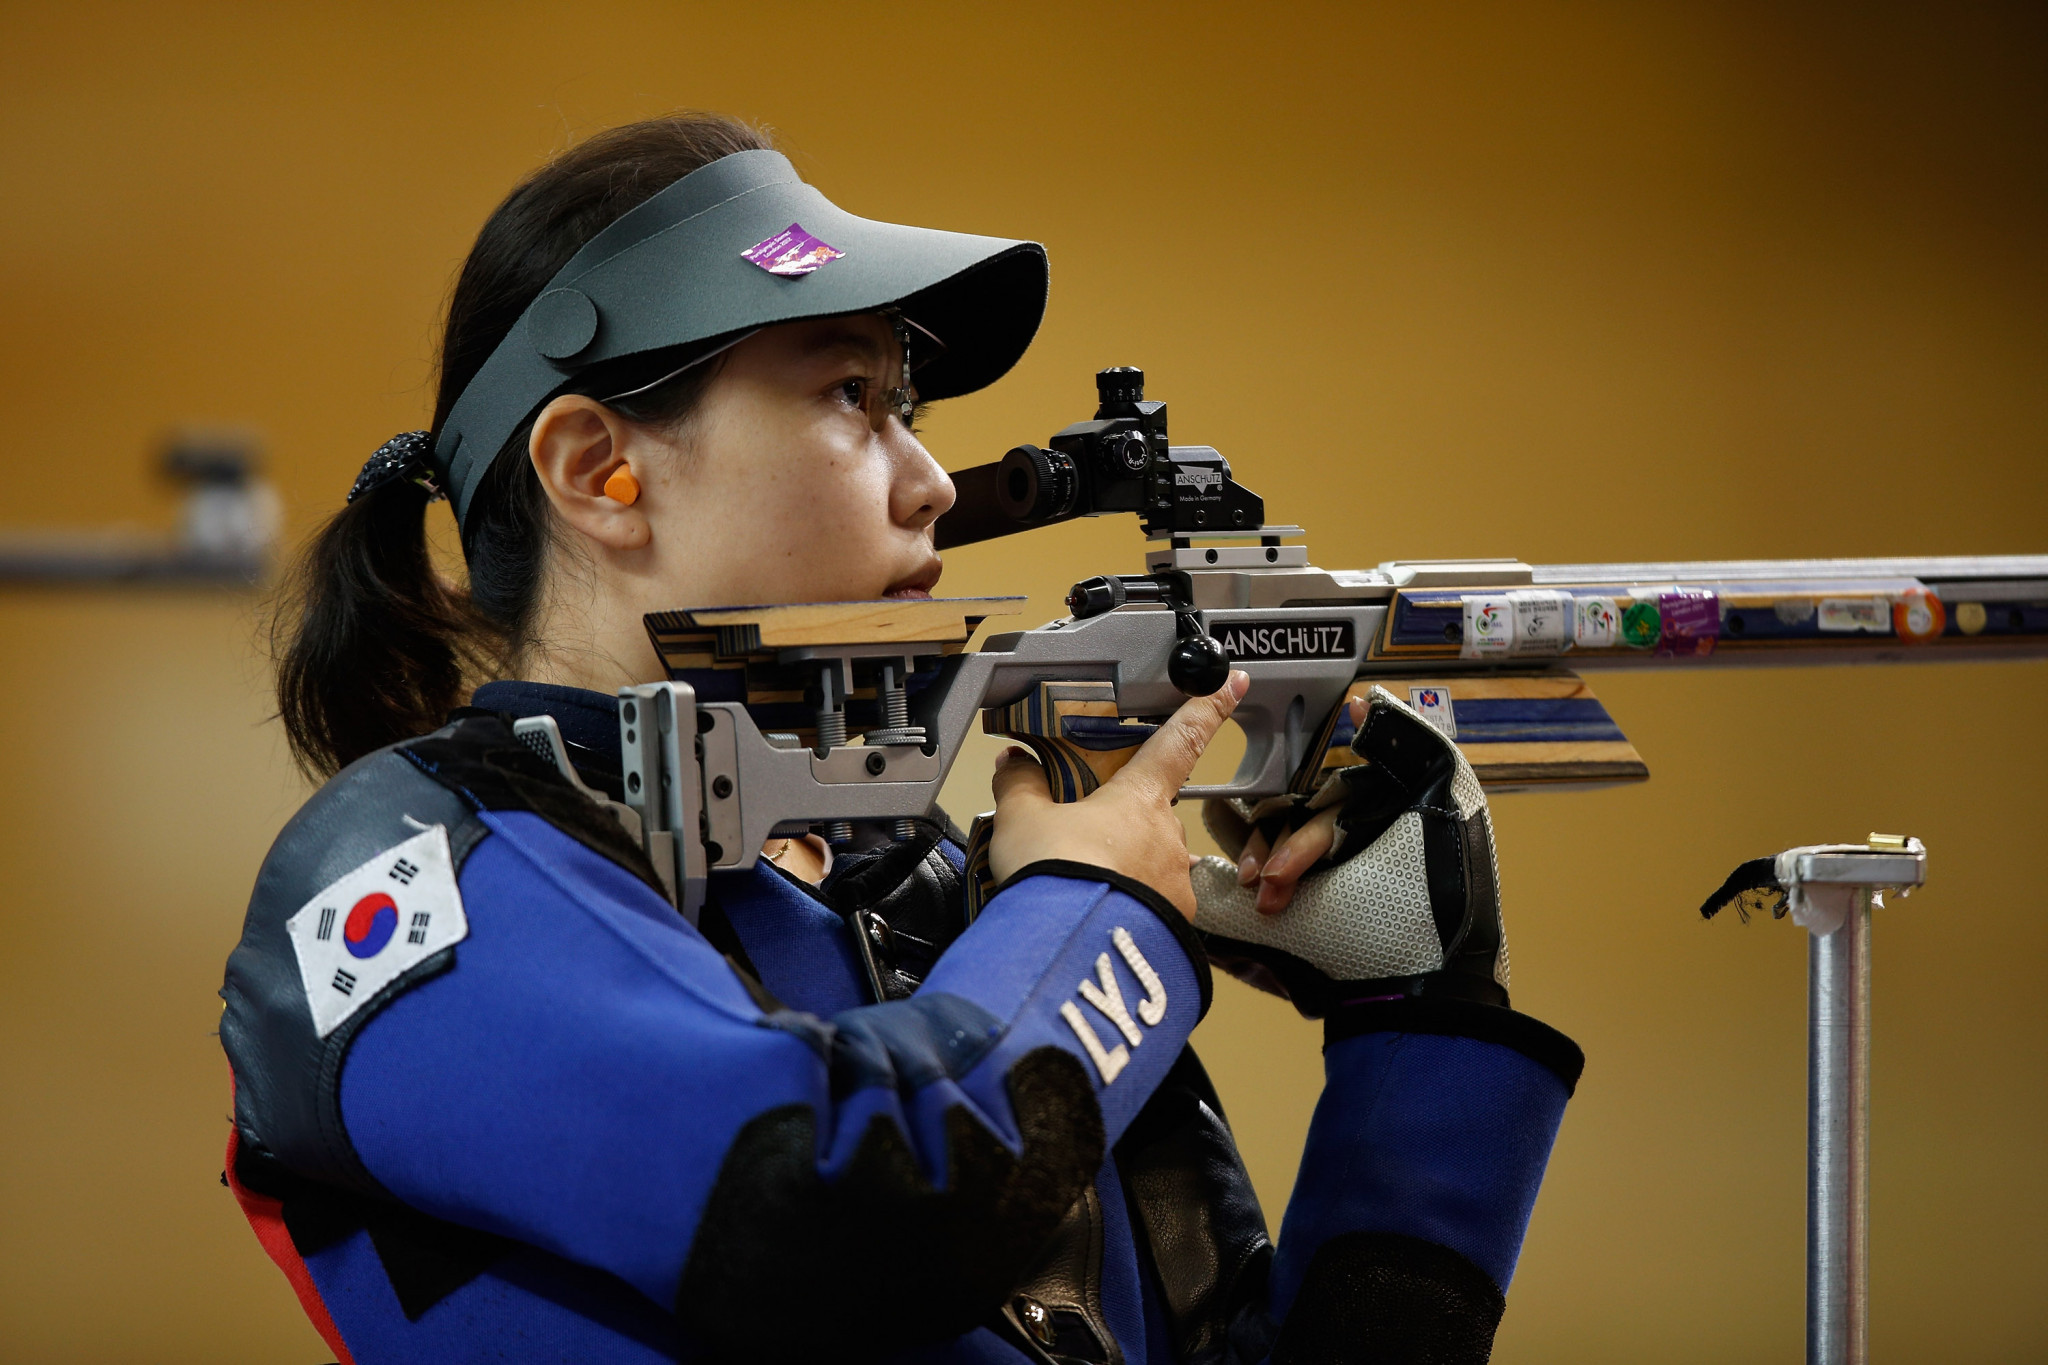 South Korea claim wins at World Shooting Para Sport World Cup in Lima